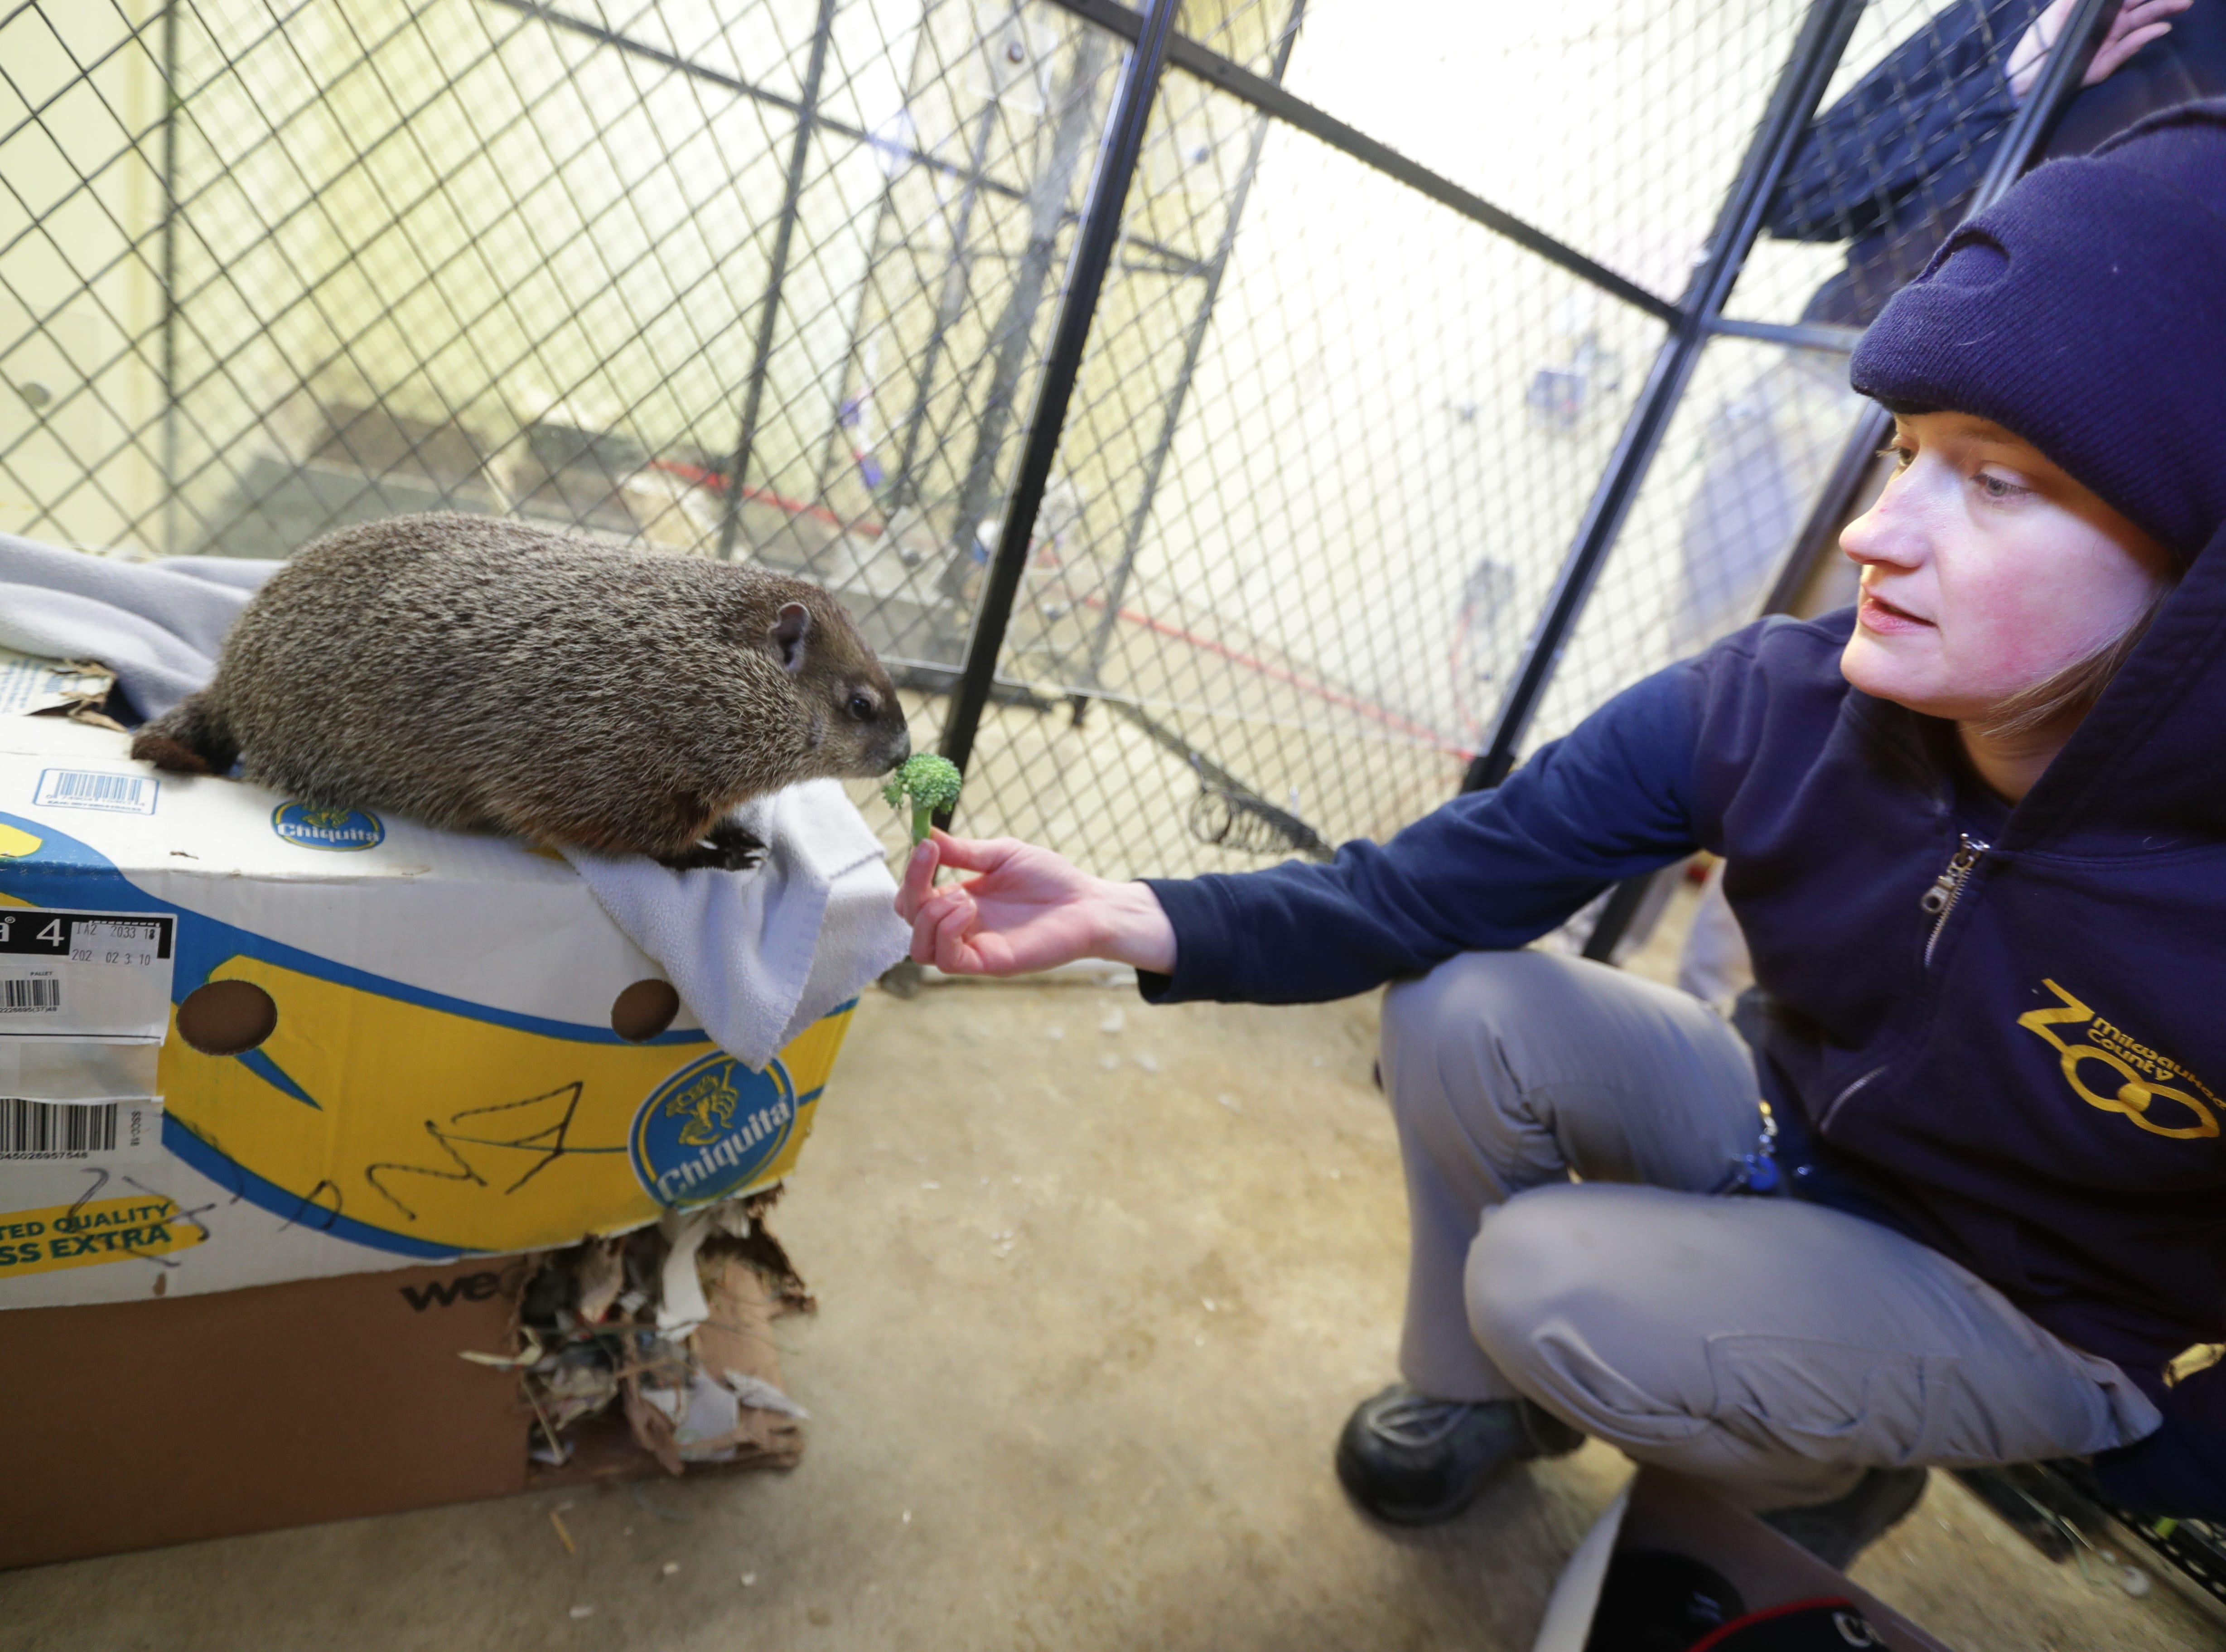 Gordy the groundhog gets a broccoli snack from Bridget Carpenter, a zookeeper in the Family Farm area of the Milwaukee County Zoo. Gordy, the zoo's new groundhog, will make his debut at the zoo's Groundhog Day ceremonySaturday.